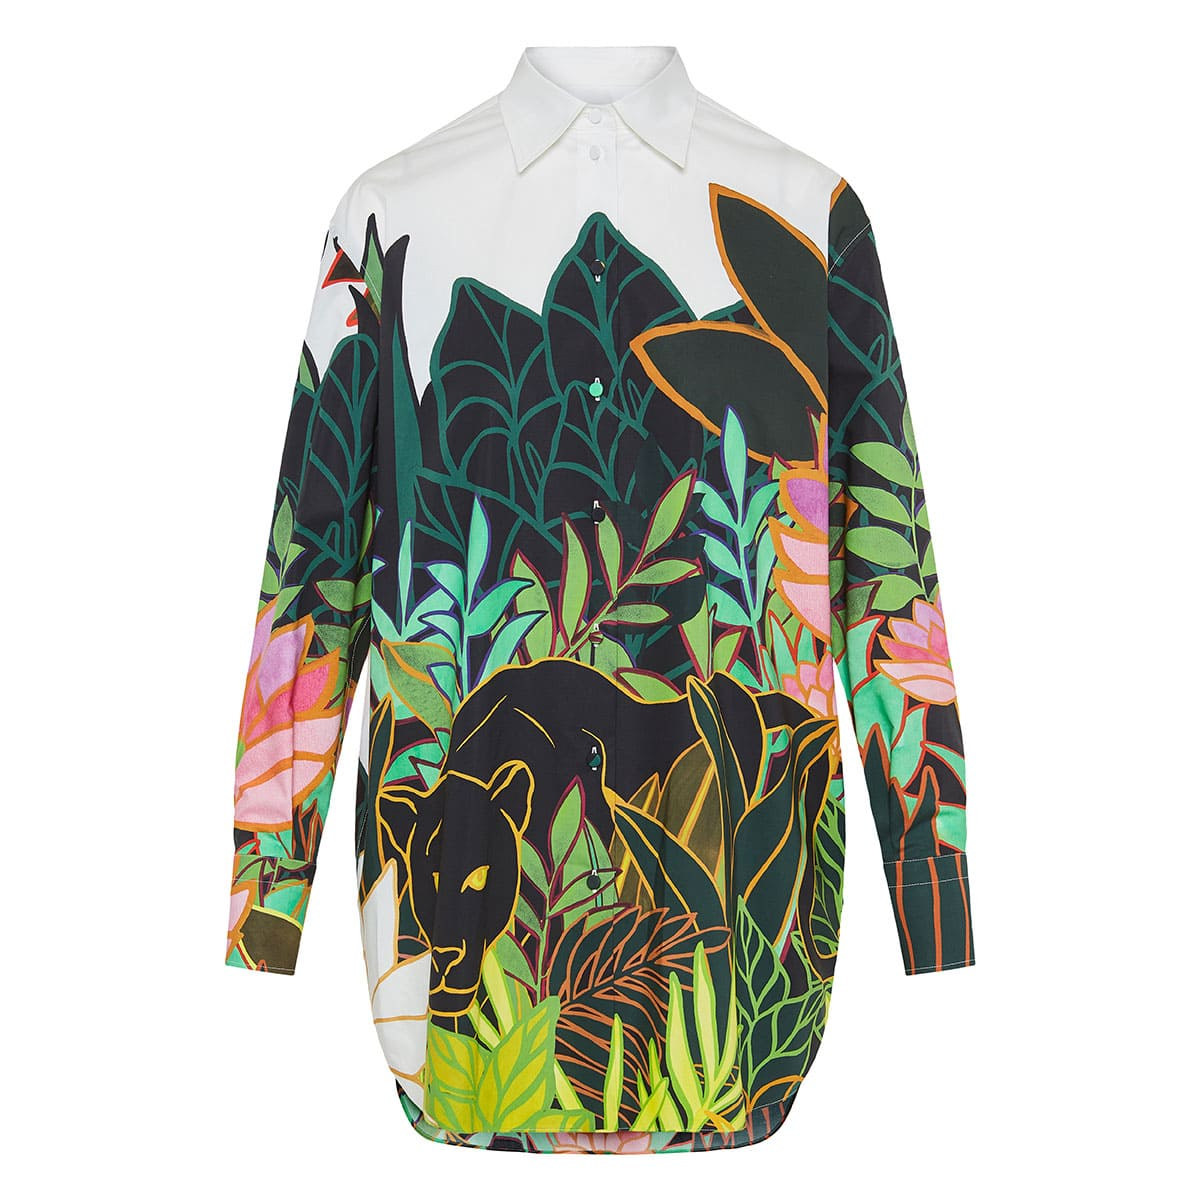 Panther In The Jungle oversized poplin shirt